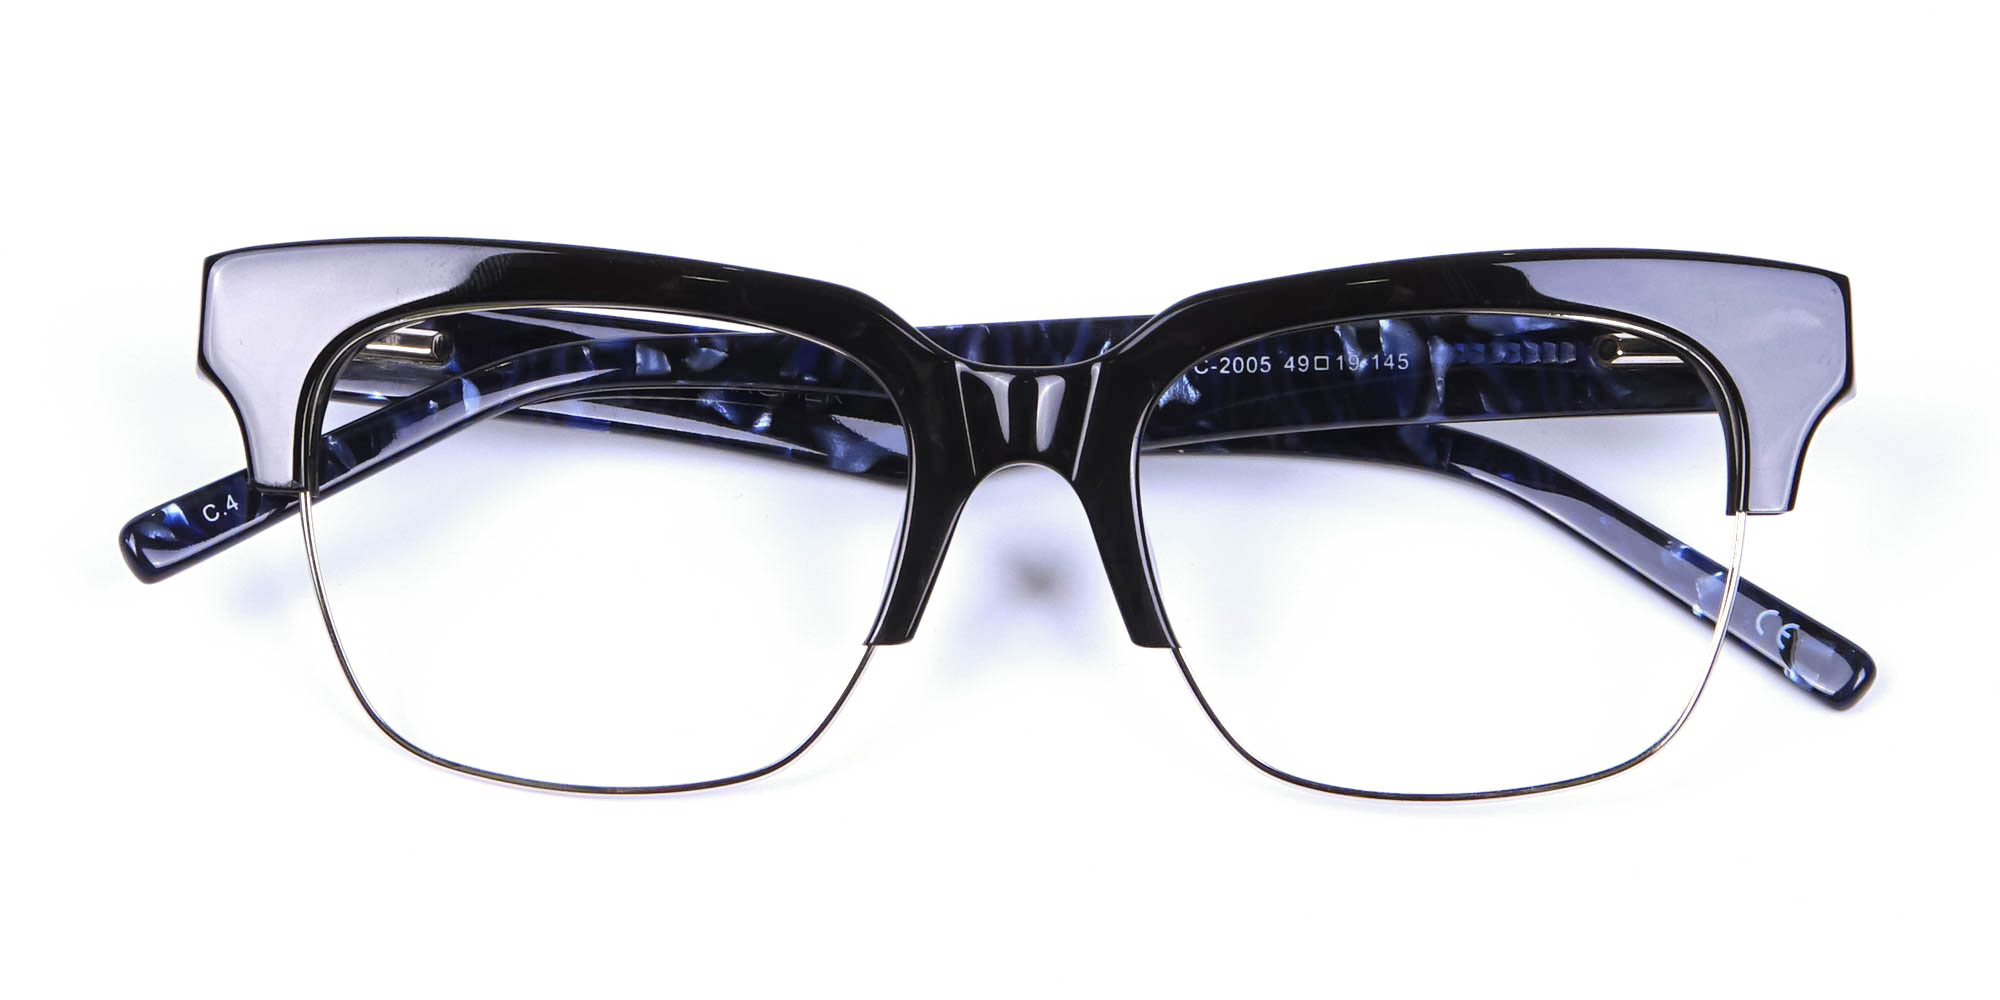 Marbled Black Browline Glasses for oval face shape